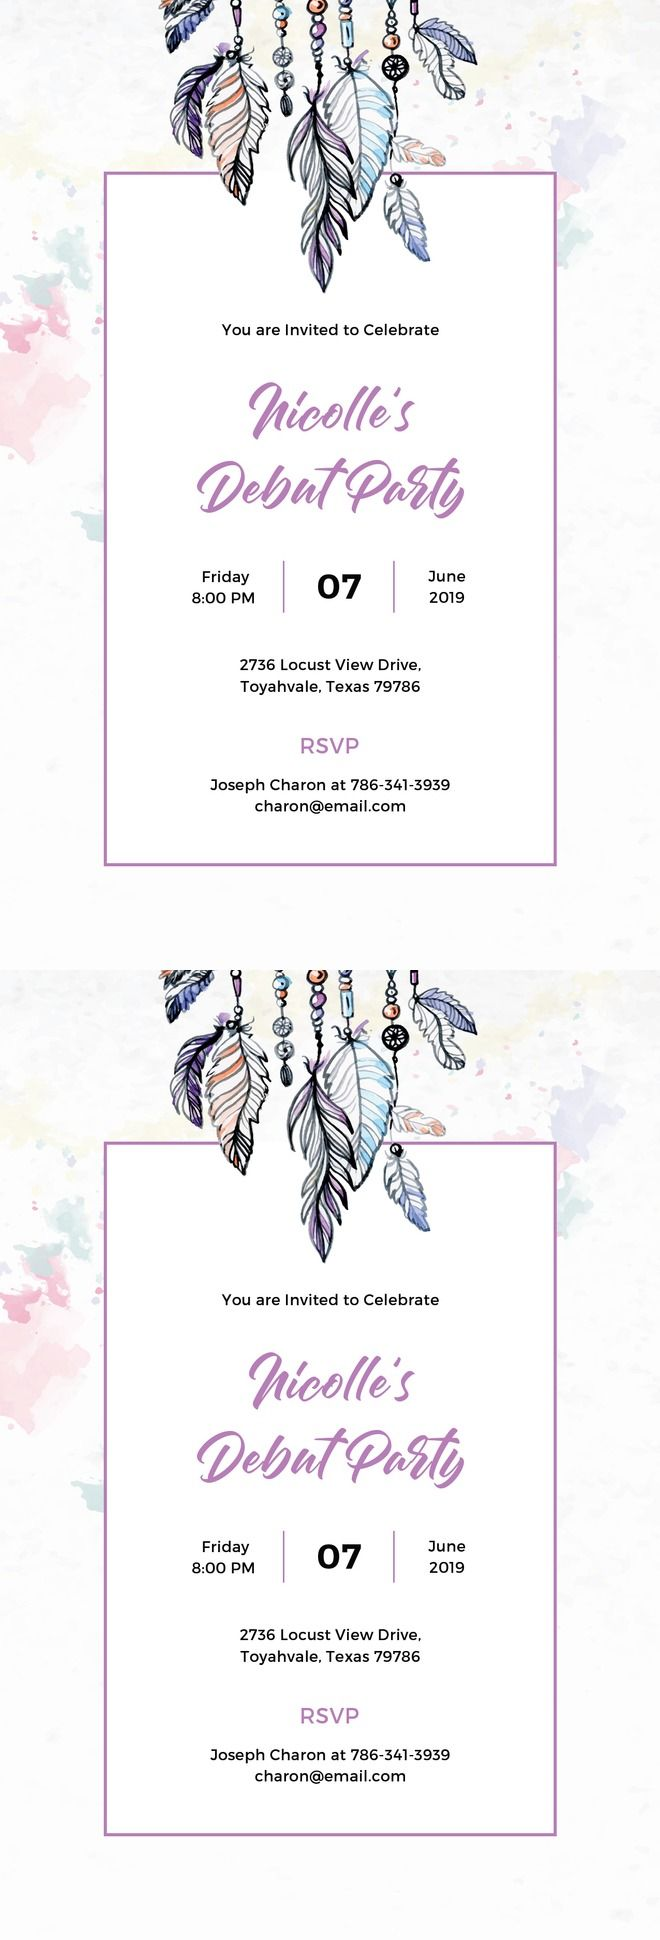 The 25 best debut invitation ideas on pinterest debut ideas free boho debut invitation template printable debut invitation design for birthday party event with stopboris Gallery